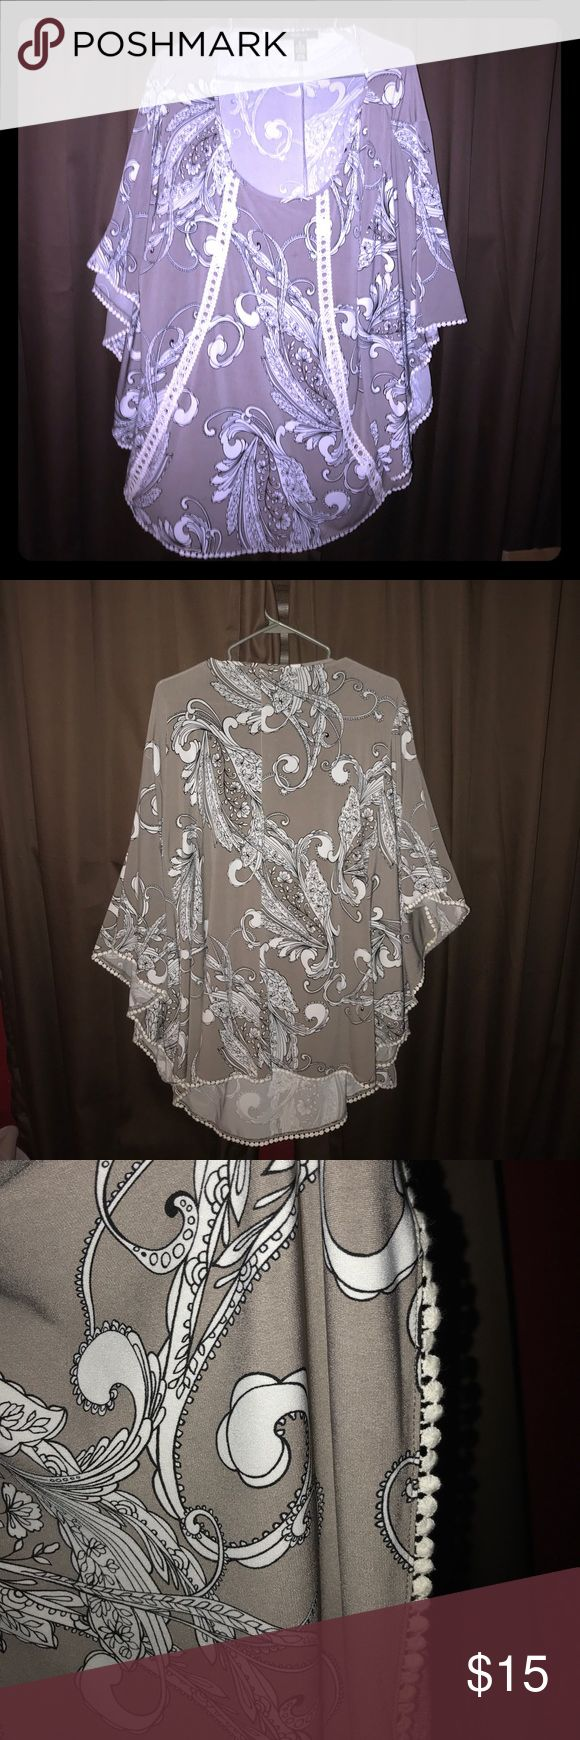 Style & co flowing blouse. Gray with floral print Style & co flowing blouse. Gray with floral print. This a beautiful top. Flows and flatters the figure. Wore only a few times. Lots of compliments. Made very well. Arms are winged. Fabric is breathable and is high quality. Shirt is in great condition Style & Co Tops Blouses